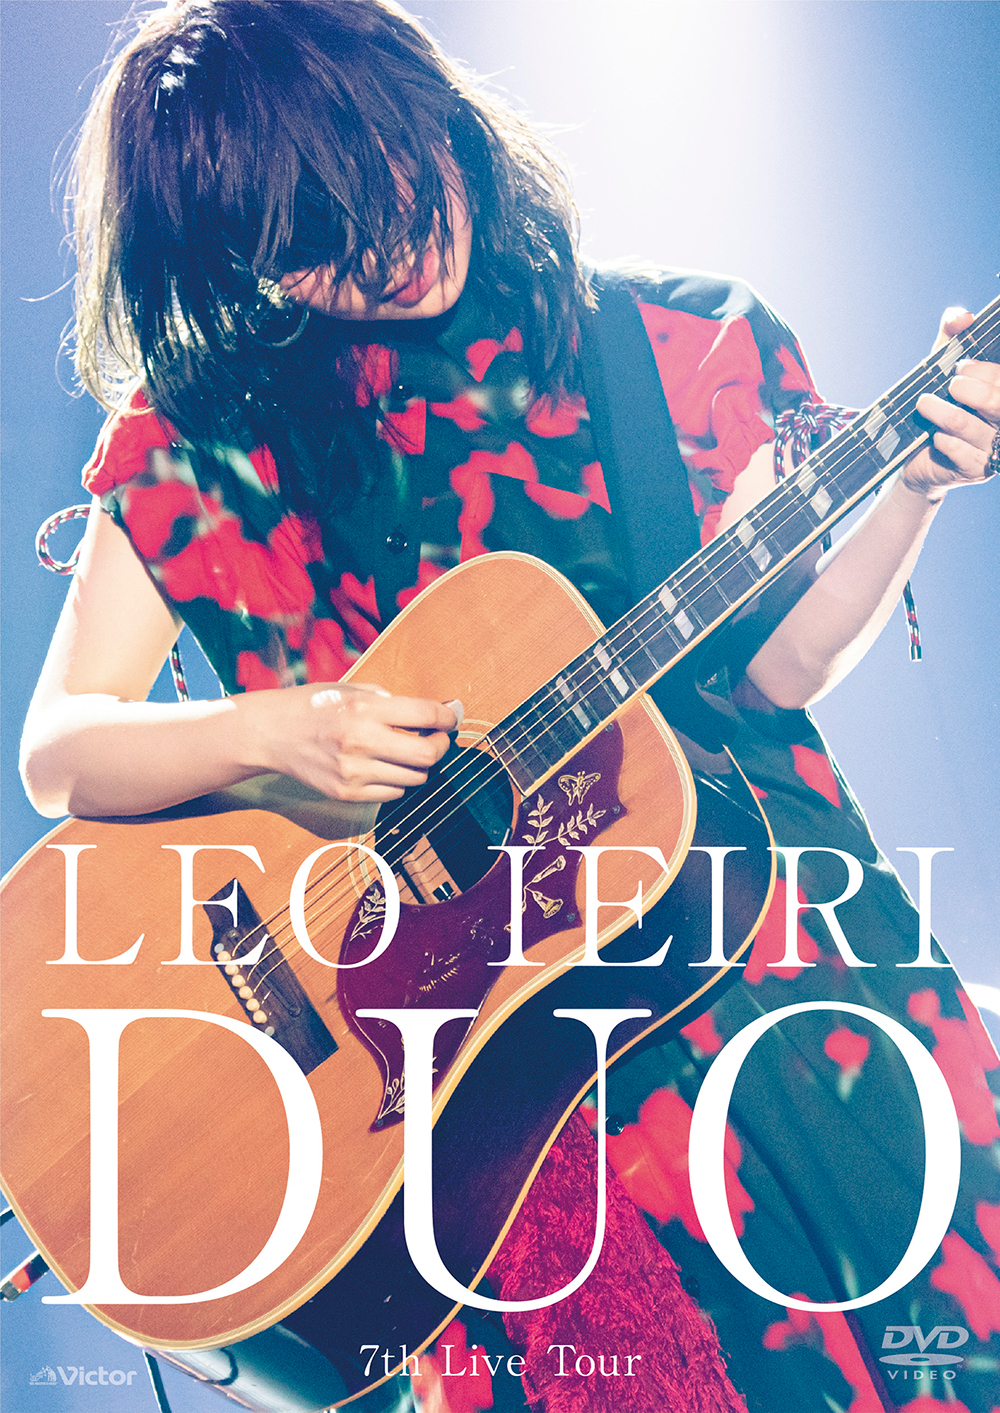 LIVE Blu-ray/DVD「DUO ~7th Live Tour~」DVD